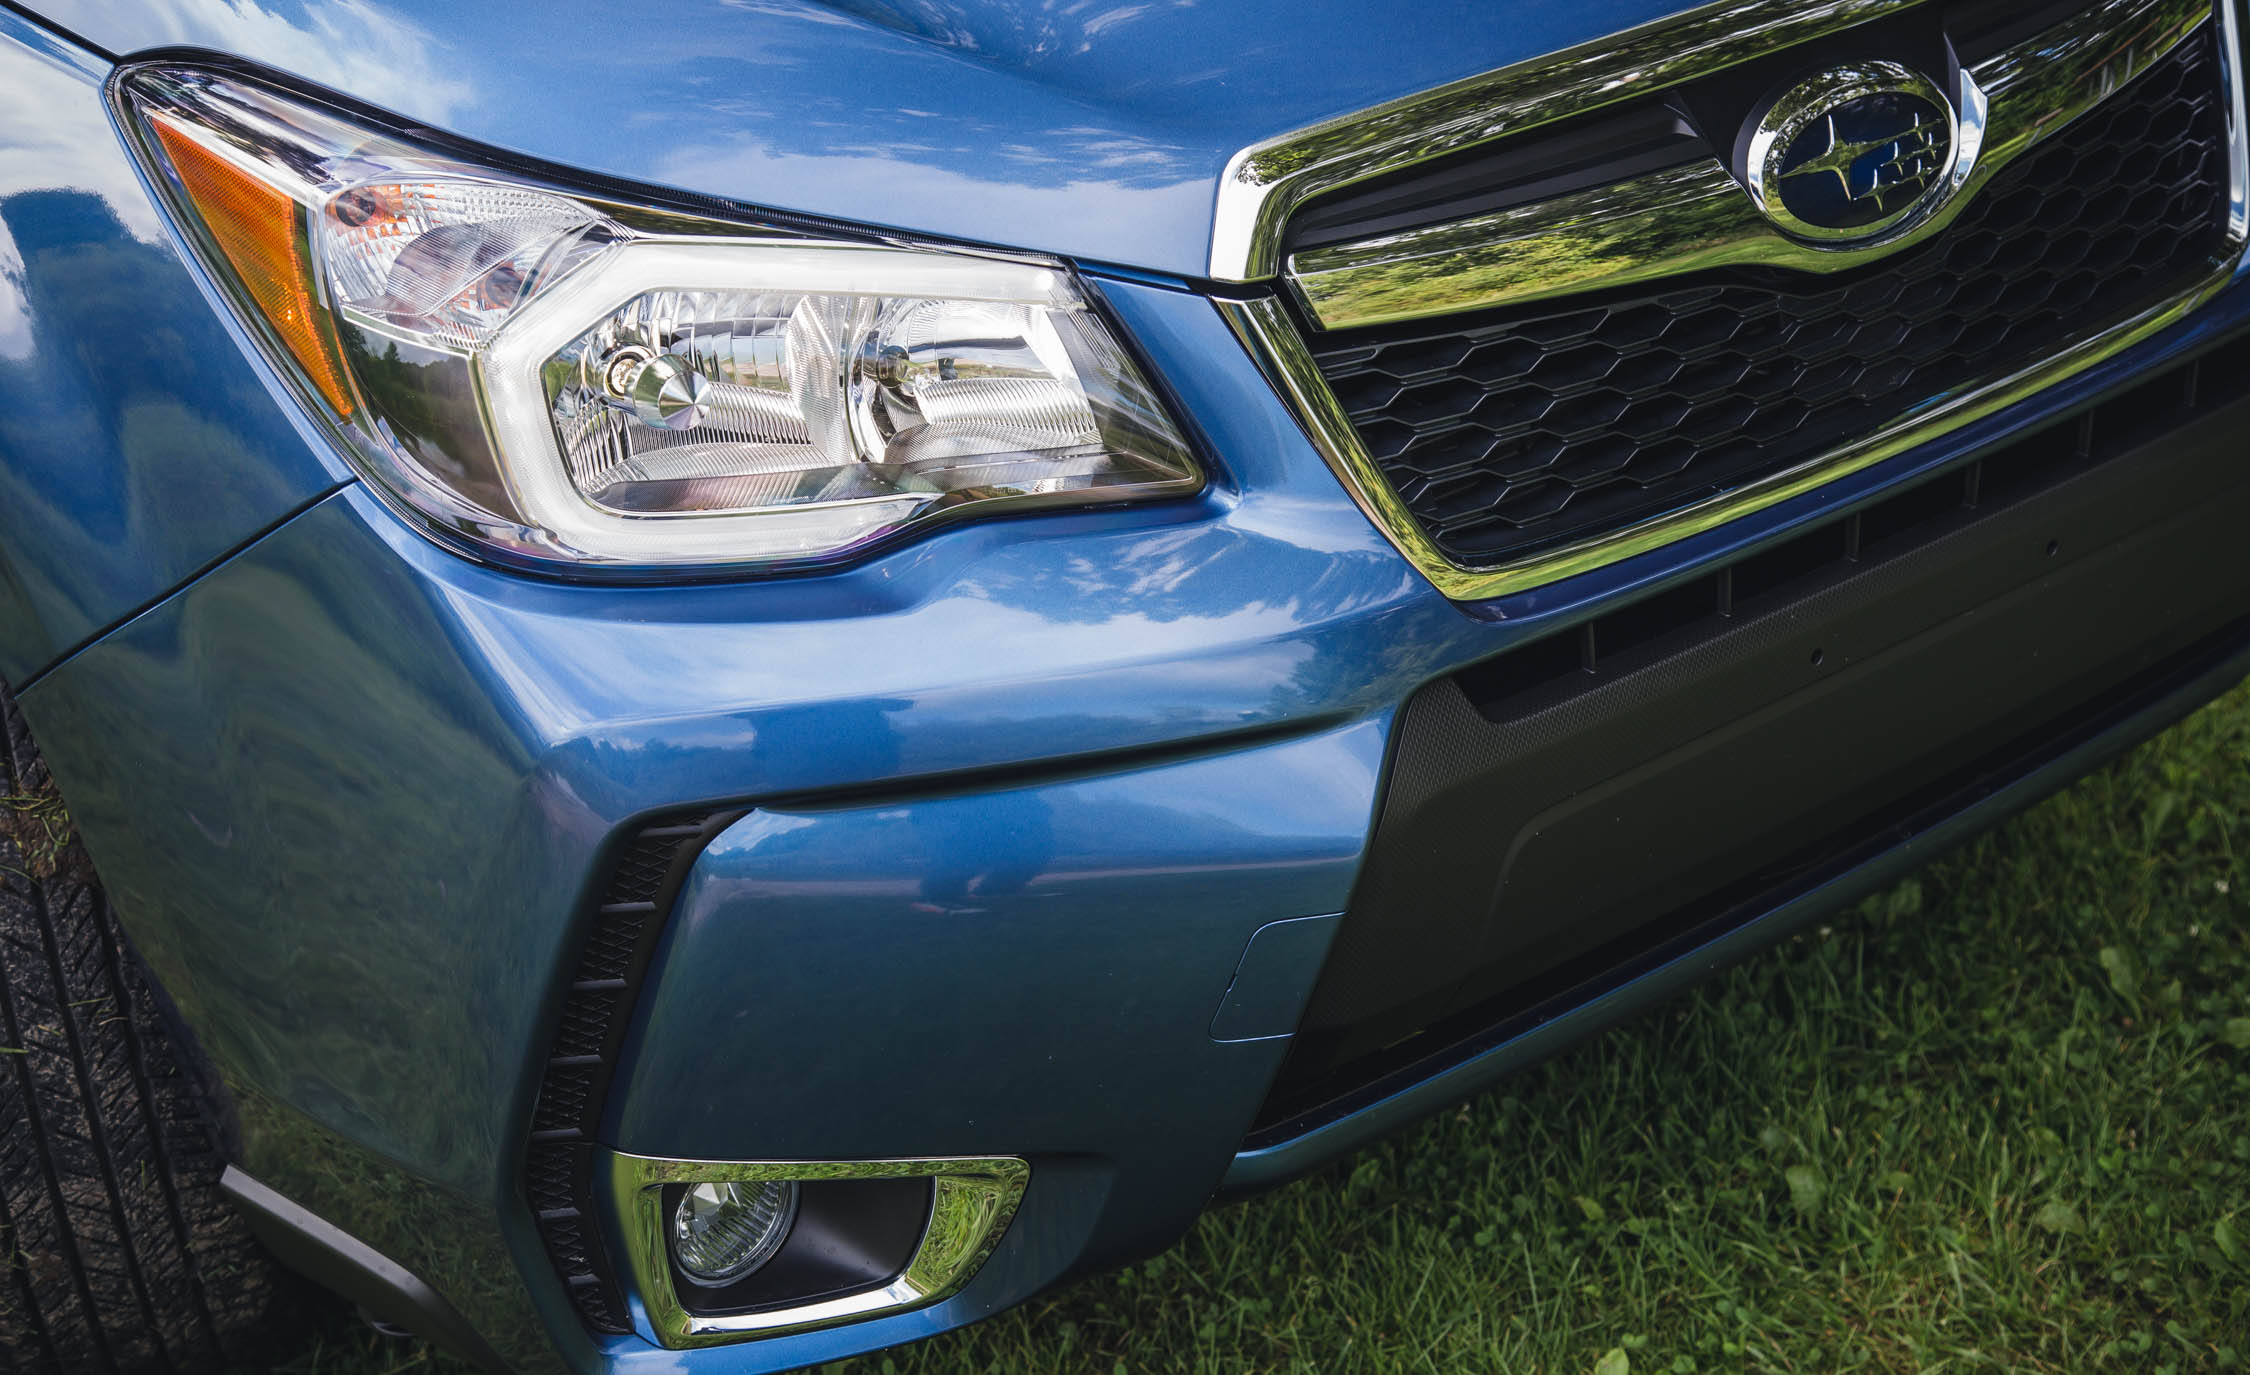 2016 Subaru Forester 2.0XT Touring Exterior Headlight Left